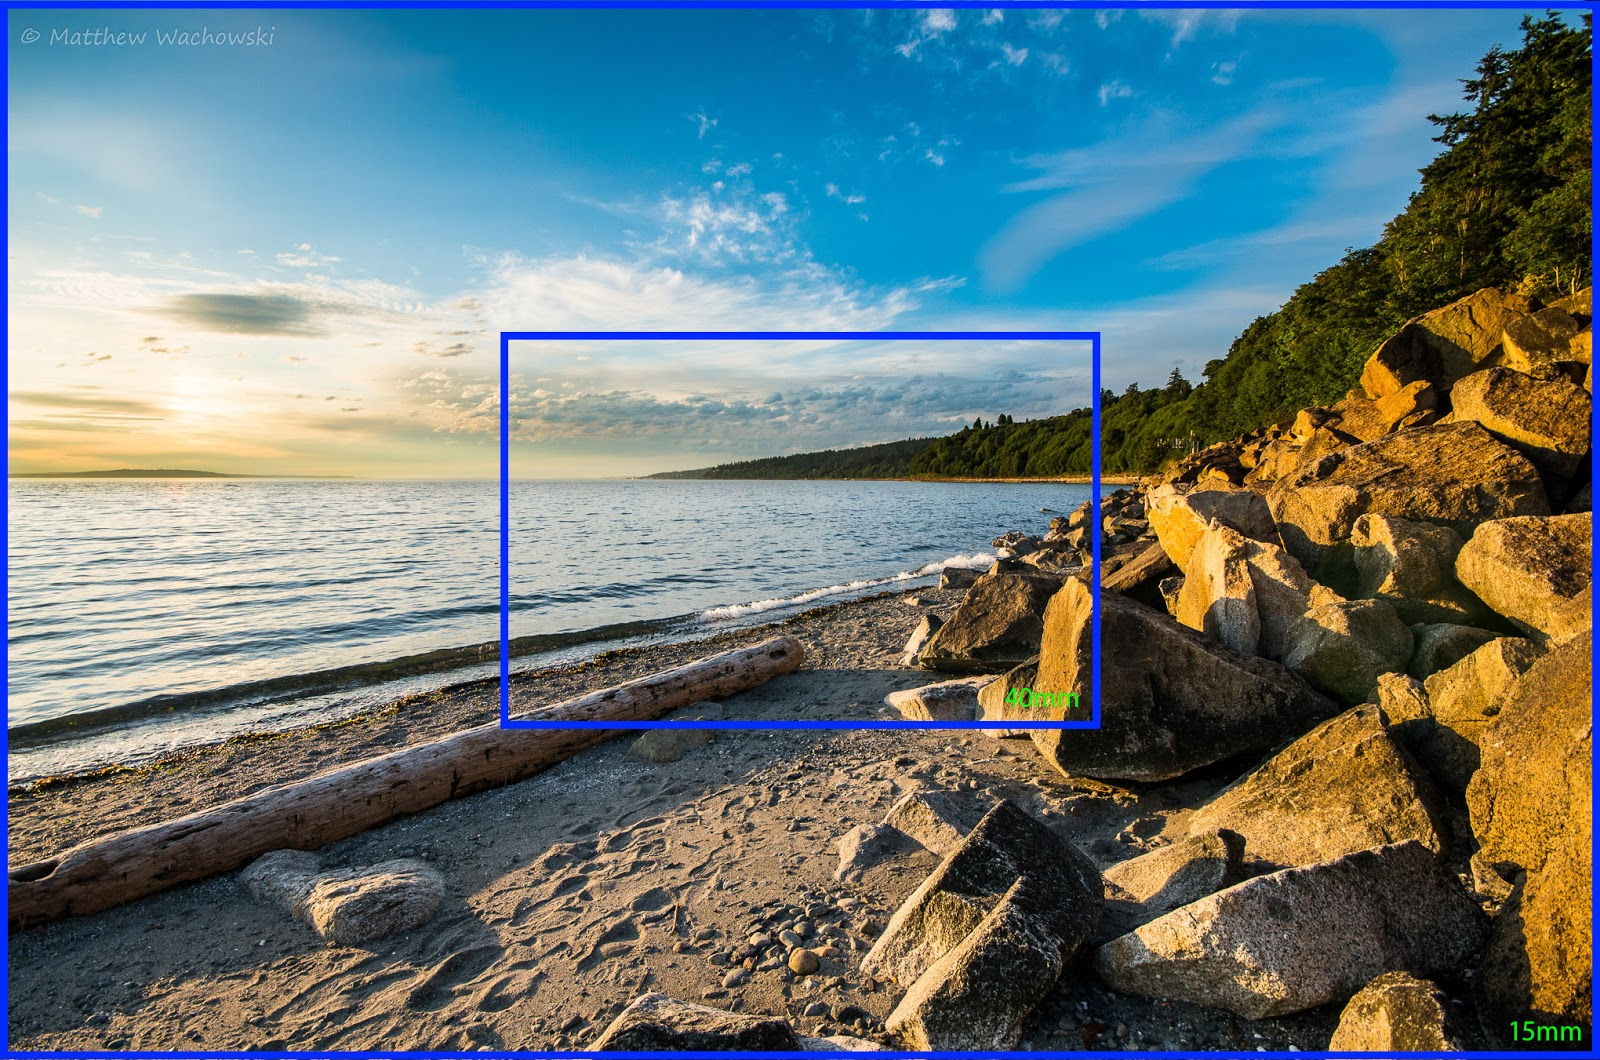 Matt\'s Photography Tips: Wide Angle Lenses - How to choose, How to use